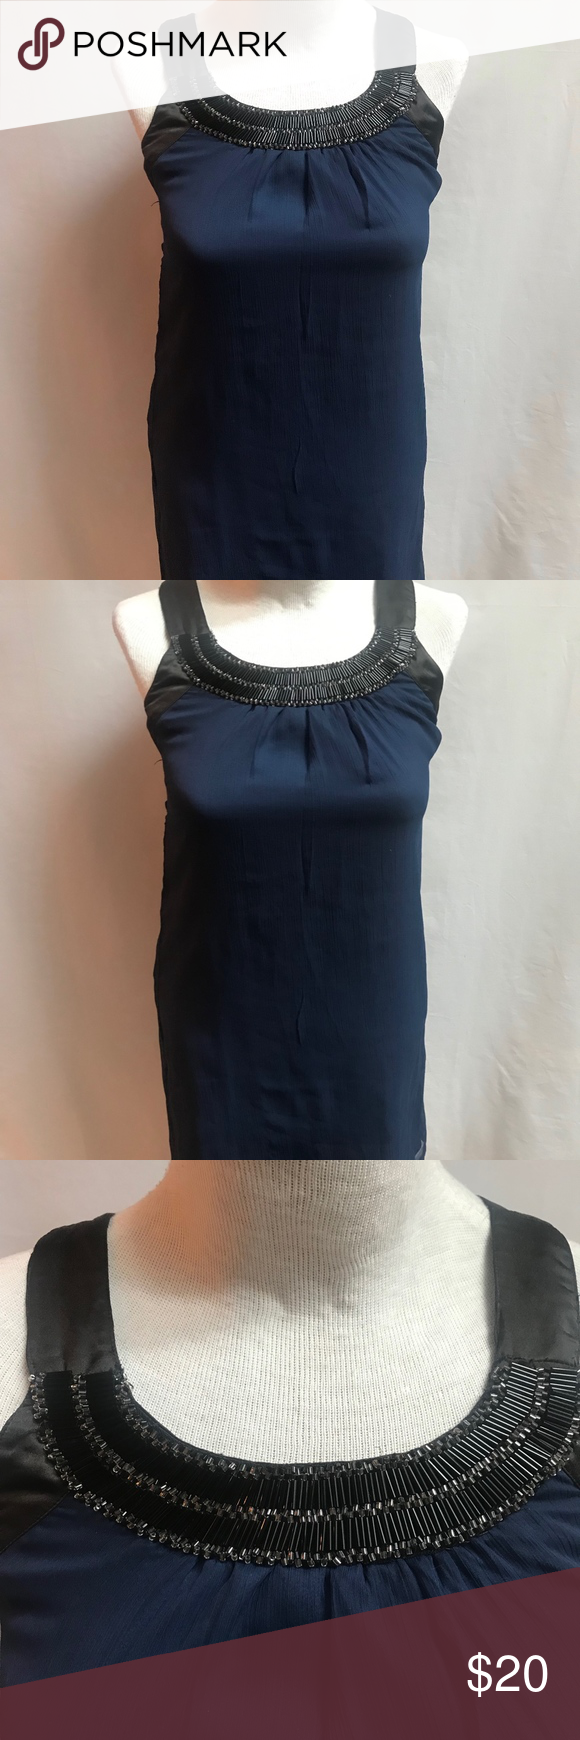 Sally Miller Couture Beaded Chiffon Navy Tank M Lovely Sally Miller Couture tank top.  Navy chiffon; fully lined; Black satin straps and armbands with beaded trim along top of front bodice.    Size Medium; very good used condition 100% polyester  Measurements taken with item laying flat: chest (armpit to armpit) 15 1/2 waist 17 bottom of back to hemline 22  Machine wash cold, line dry  Thank you for visiting my closet! Sally Miller Tops Tank Tops #sallymiller